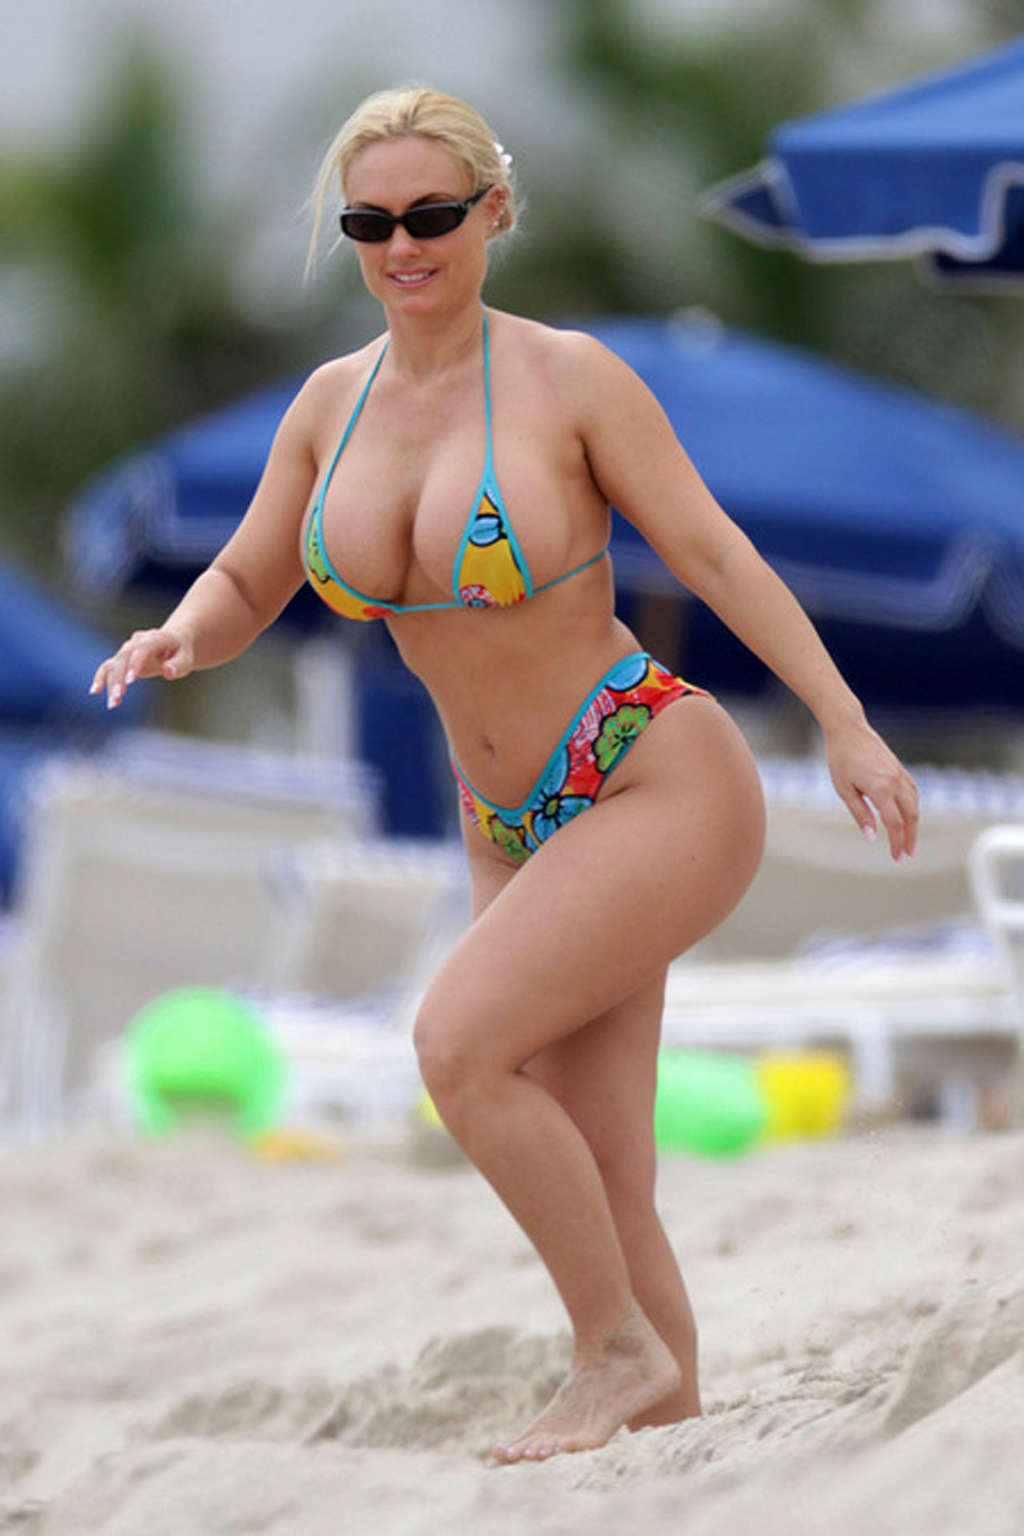 Nicki Minaj Nago >> American Model Mistaken As Hottest Croatian President Kolinda Grabar Kitarović | Reckon Talk